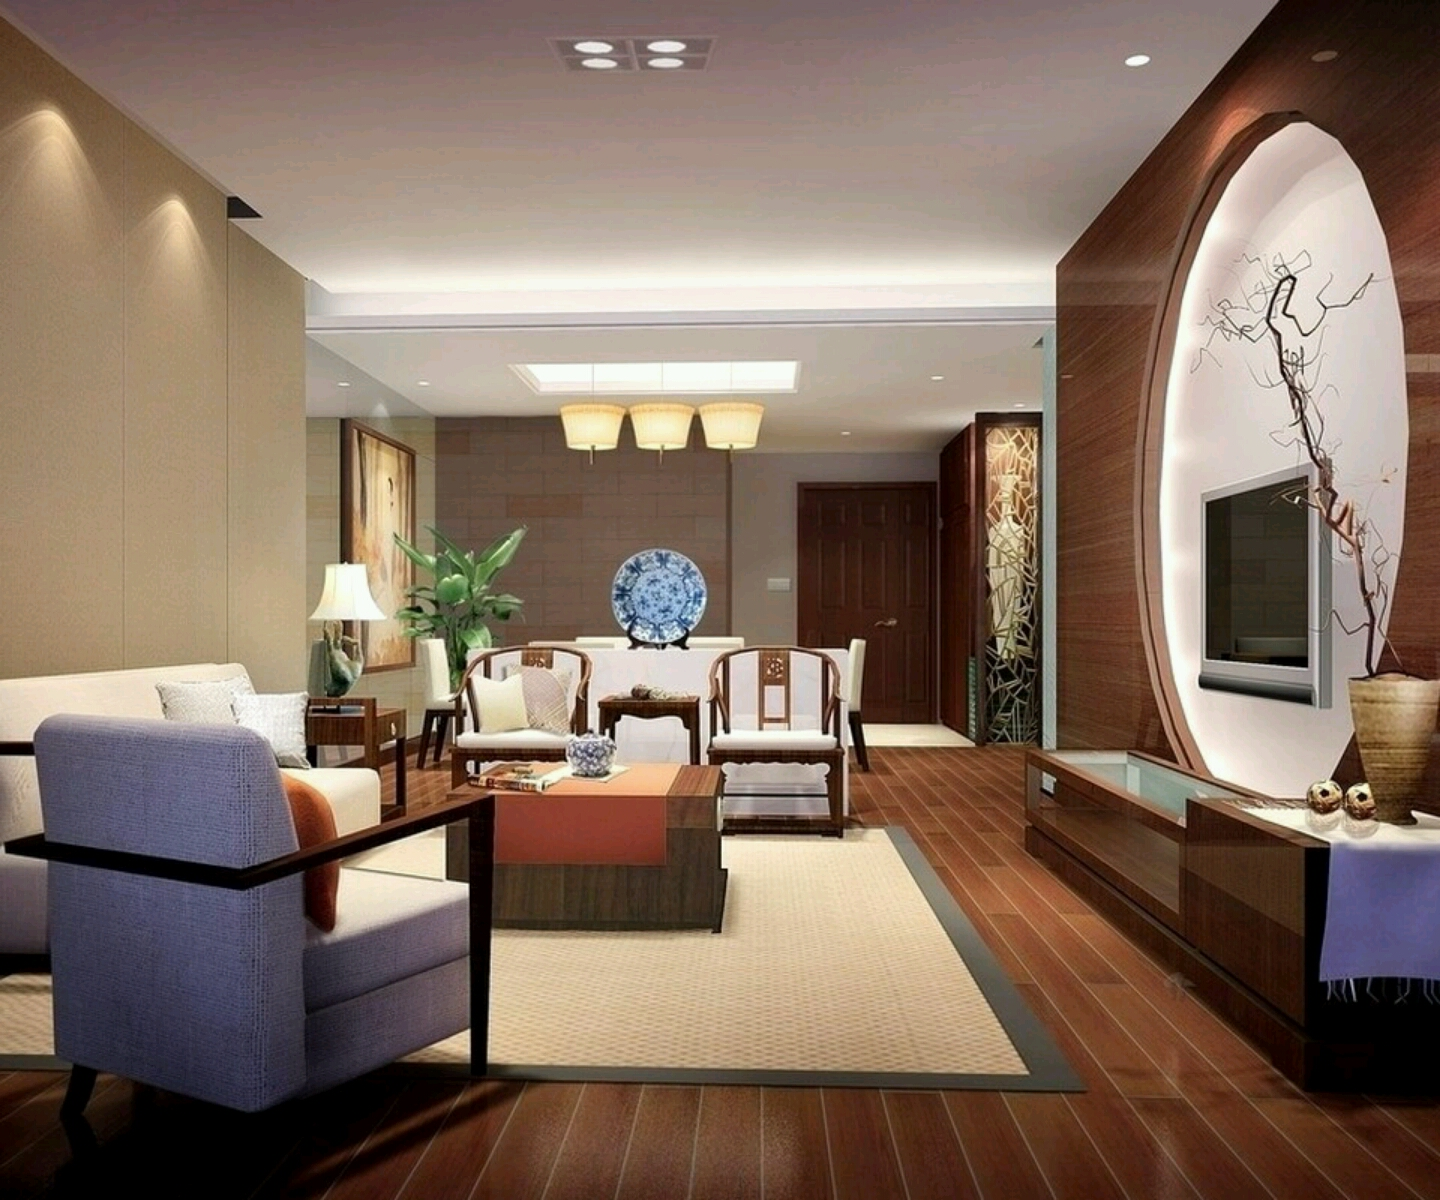 Luxury homes interior decoration living room designs ideas for Interior room decoration